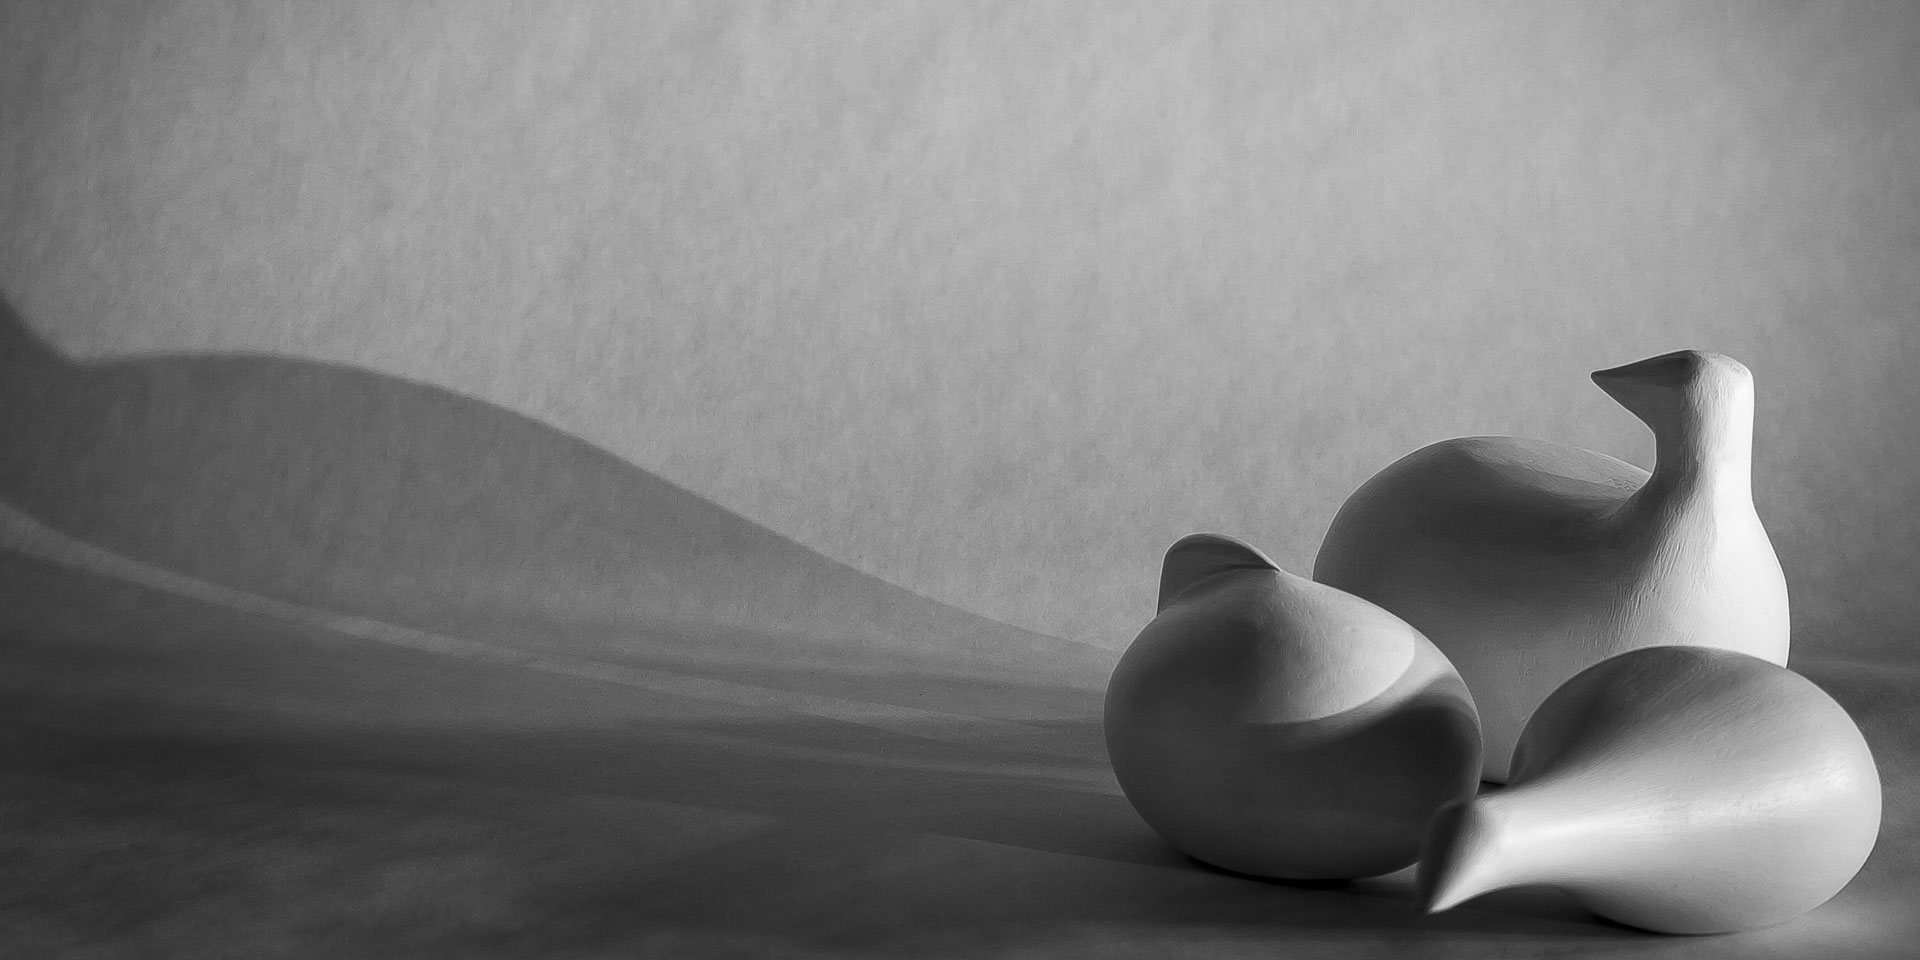 Black and white photographic still life of abstract wooden birds.